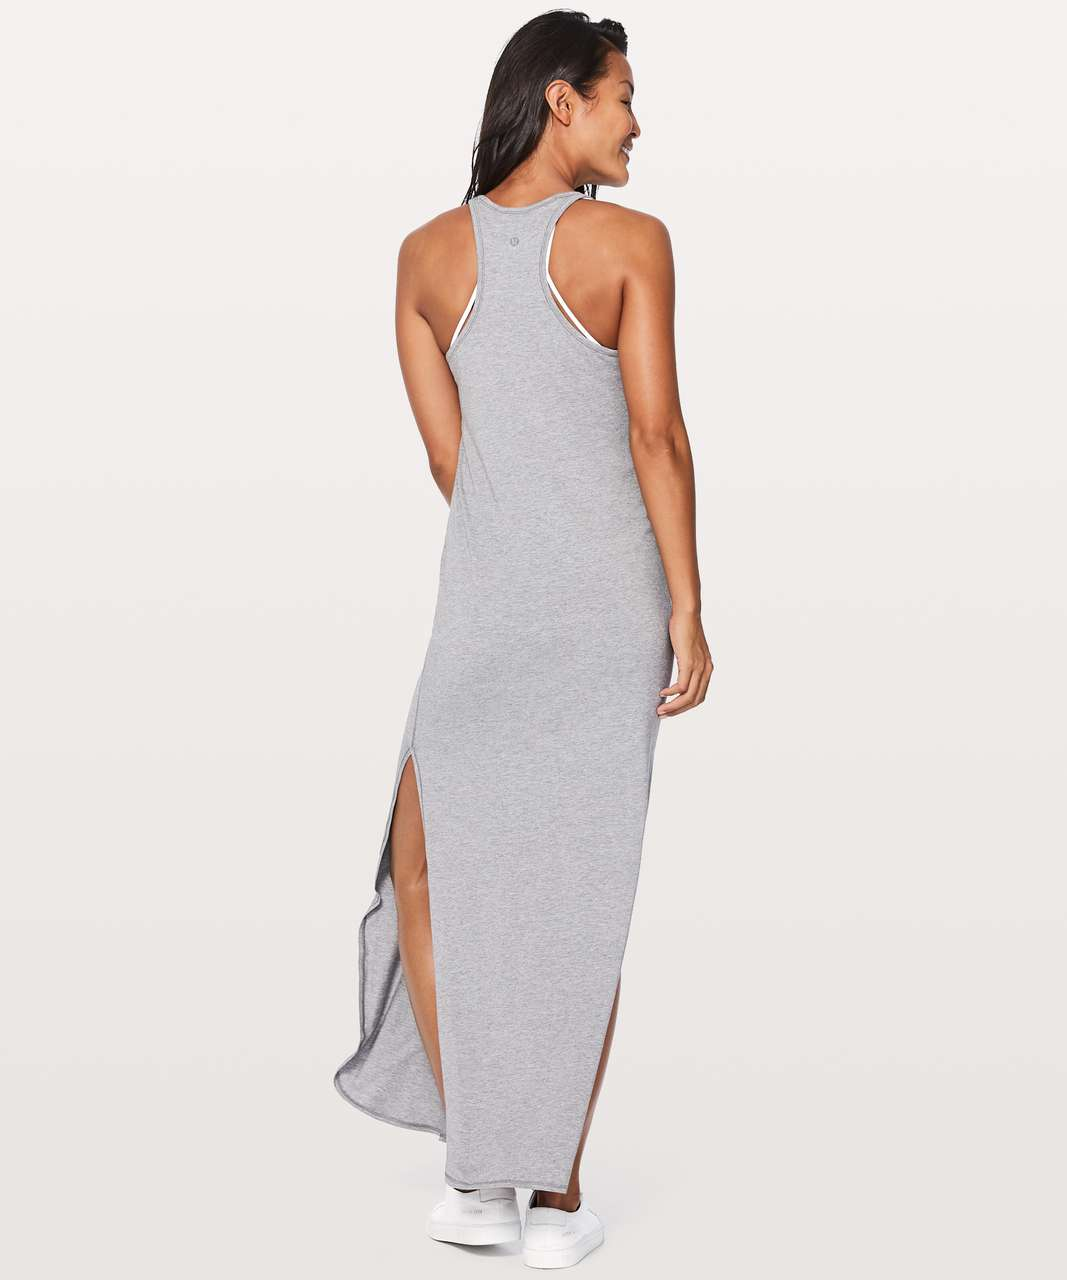 bdf5eb80e7d Lululemon Refresh Maxi Dress II - Heathered Medium Grey - lulu fanatics